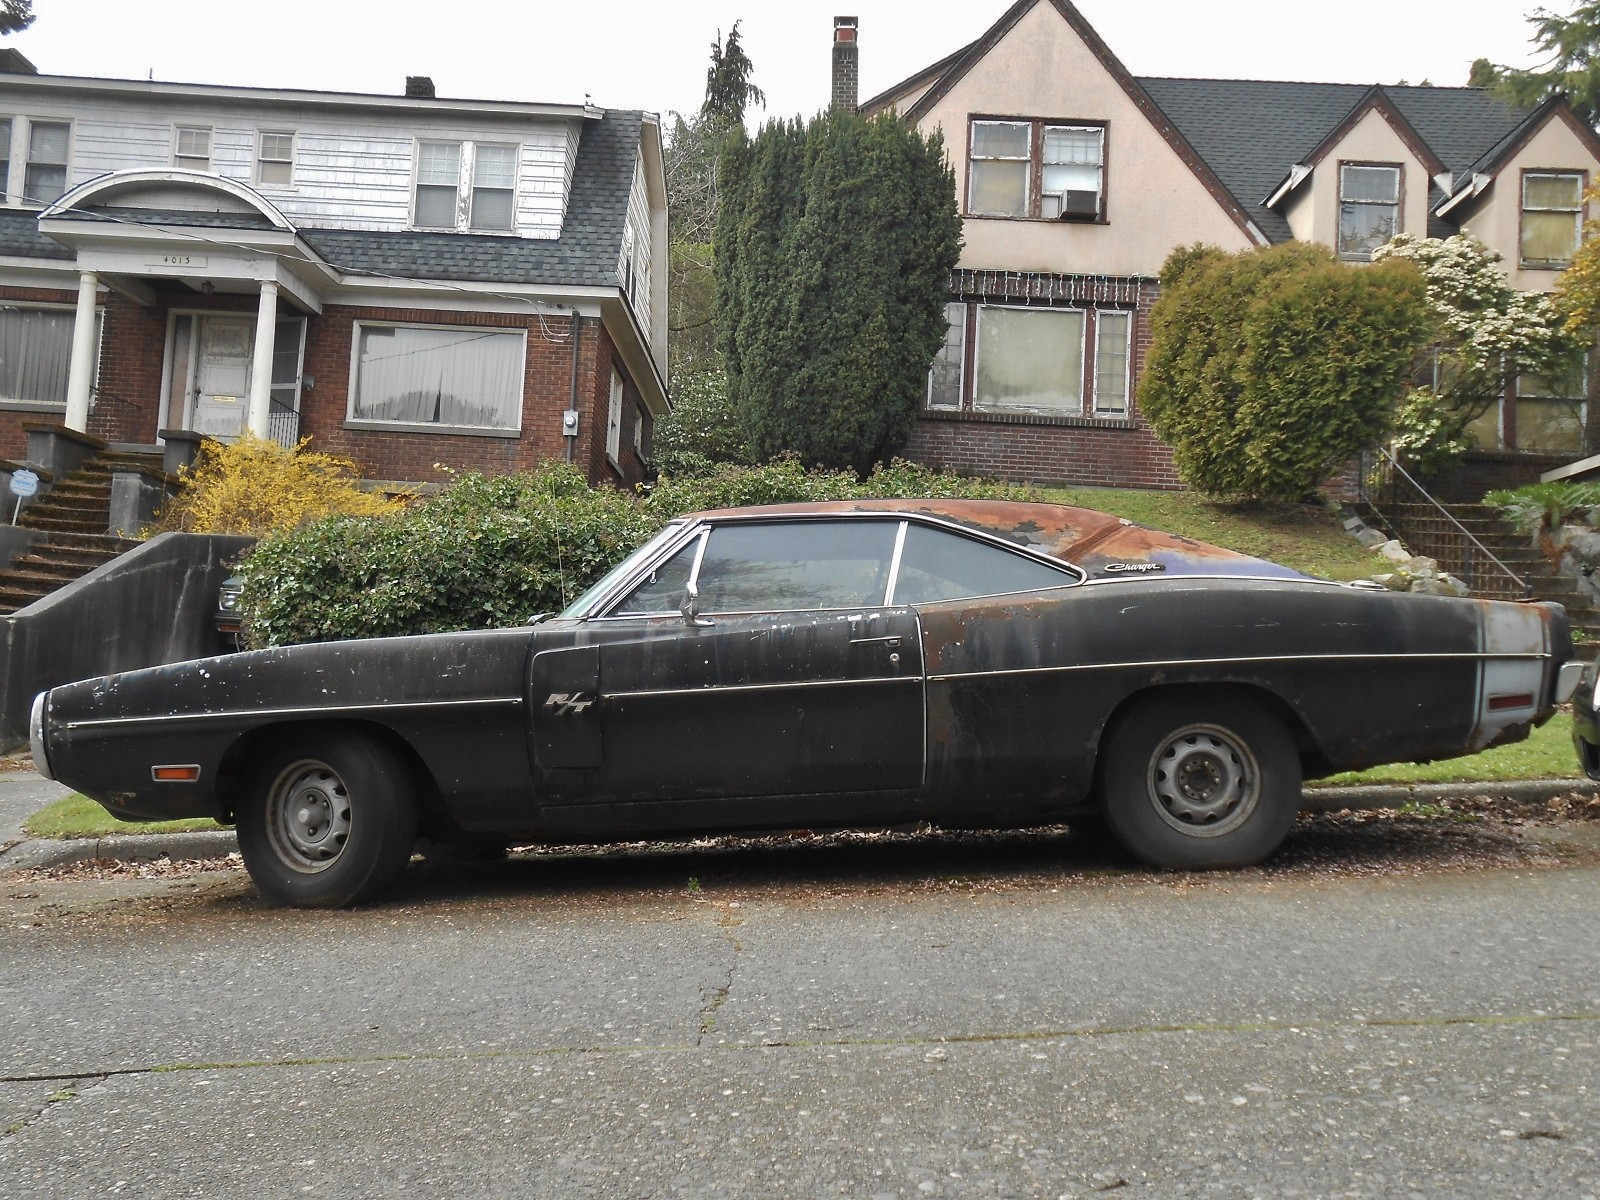 neglected-plum-crazy-1970-dodge-charger-r-t-440-rusting-in-washington-listed-as-stolen_1